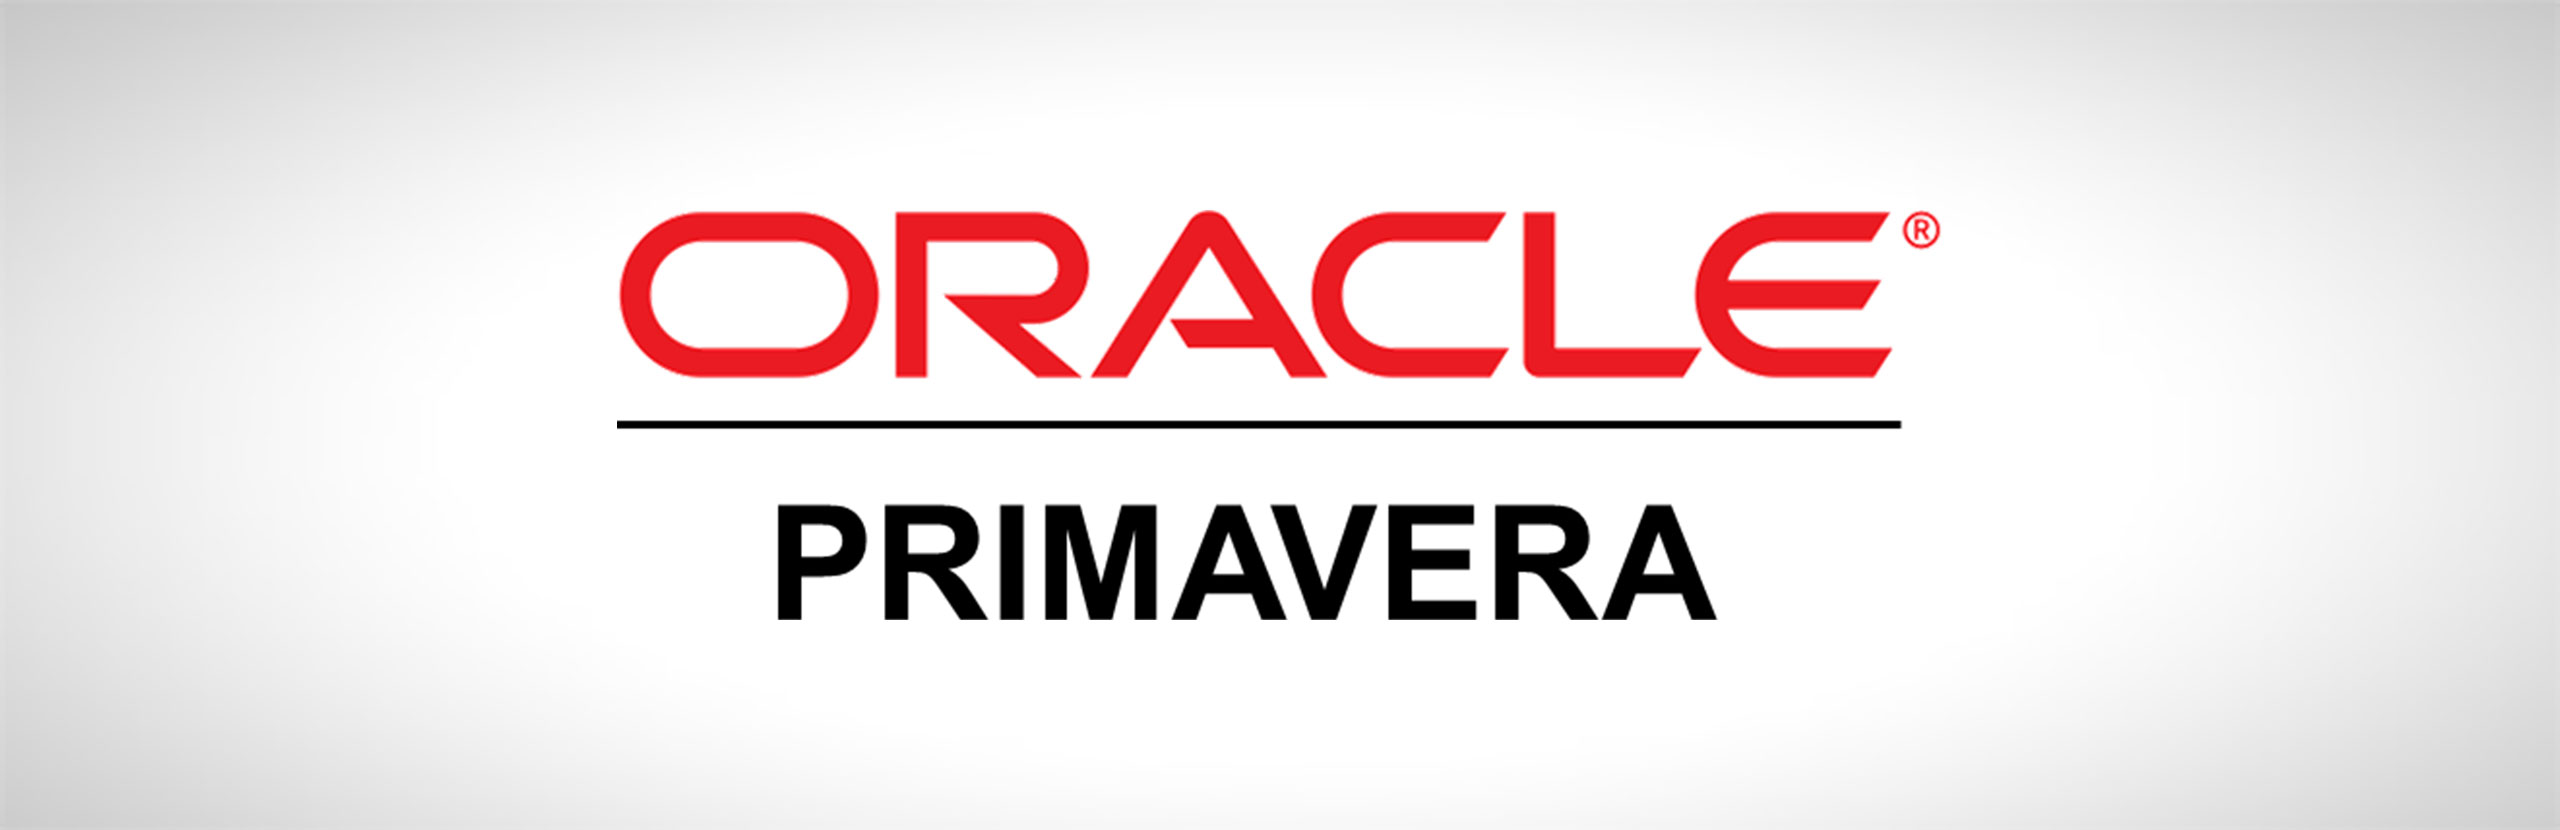 Oracle Primavera